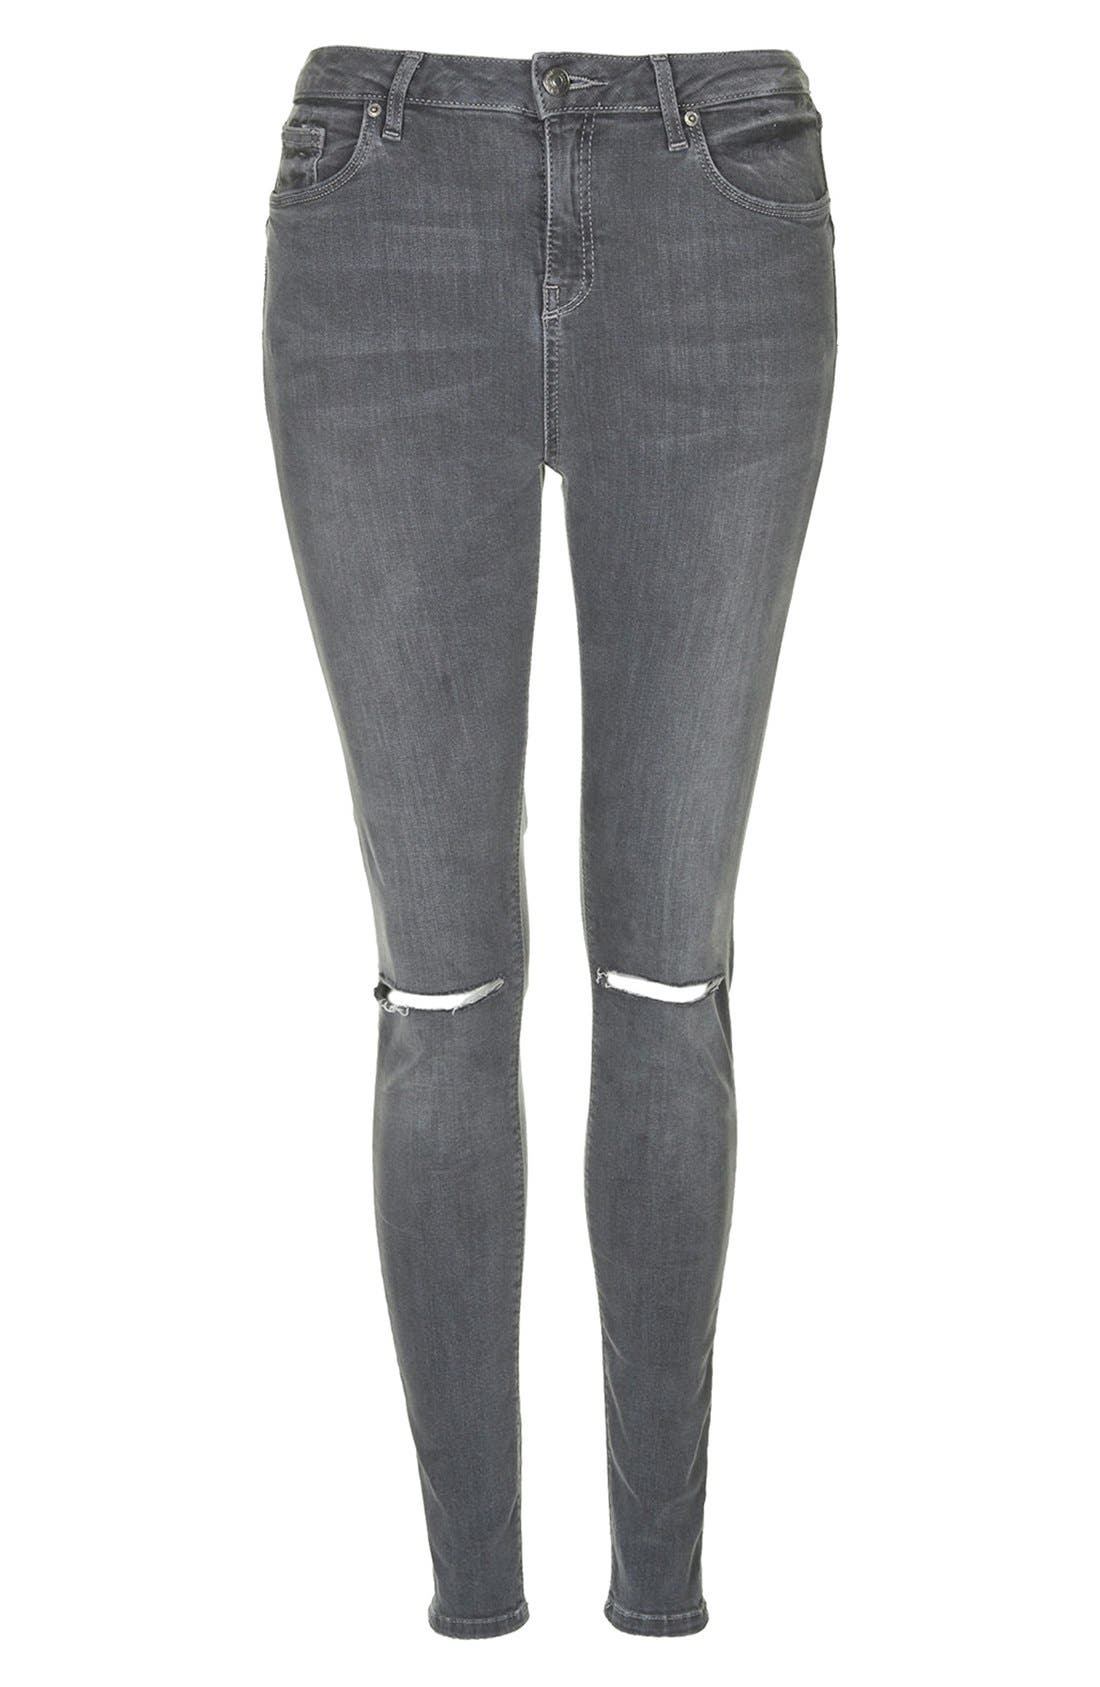 TOPSHOP, Moto 'Jamie' Ripped Skinny Jeans, Alternate thumbnail 5, color, 020